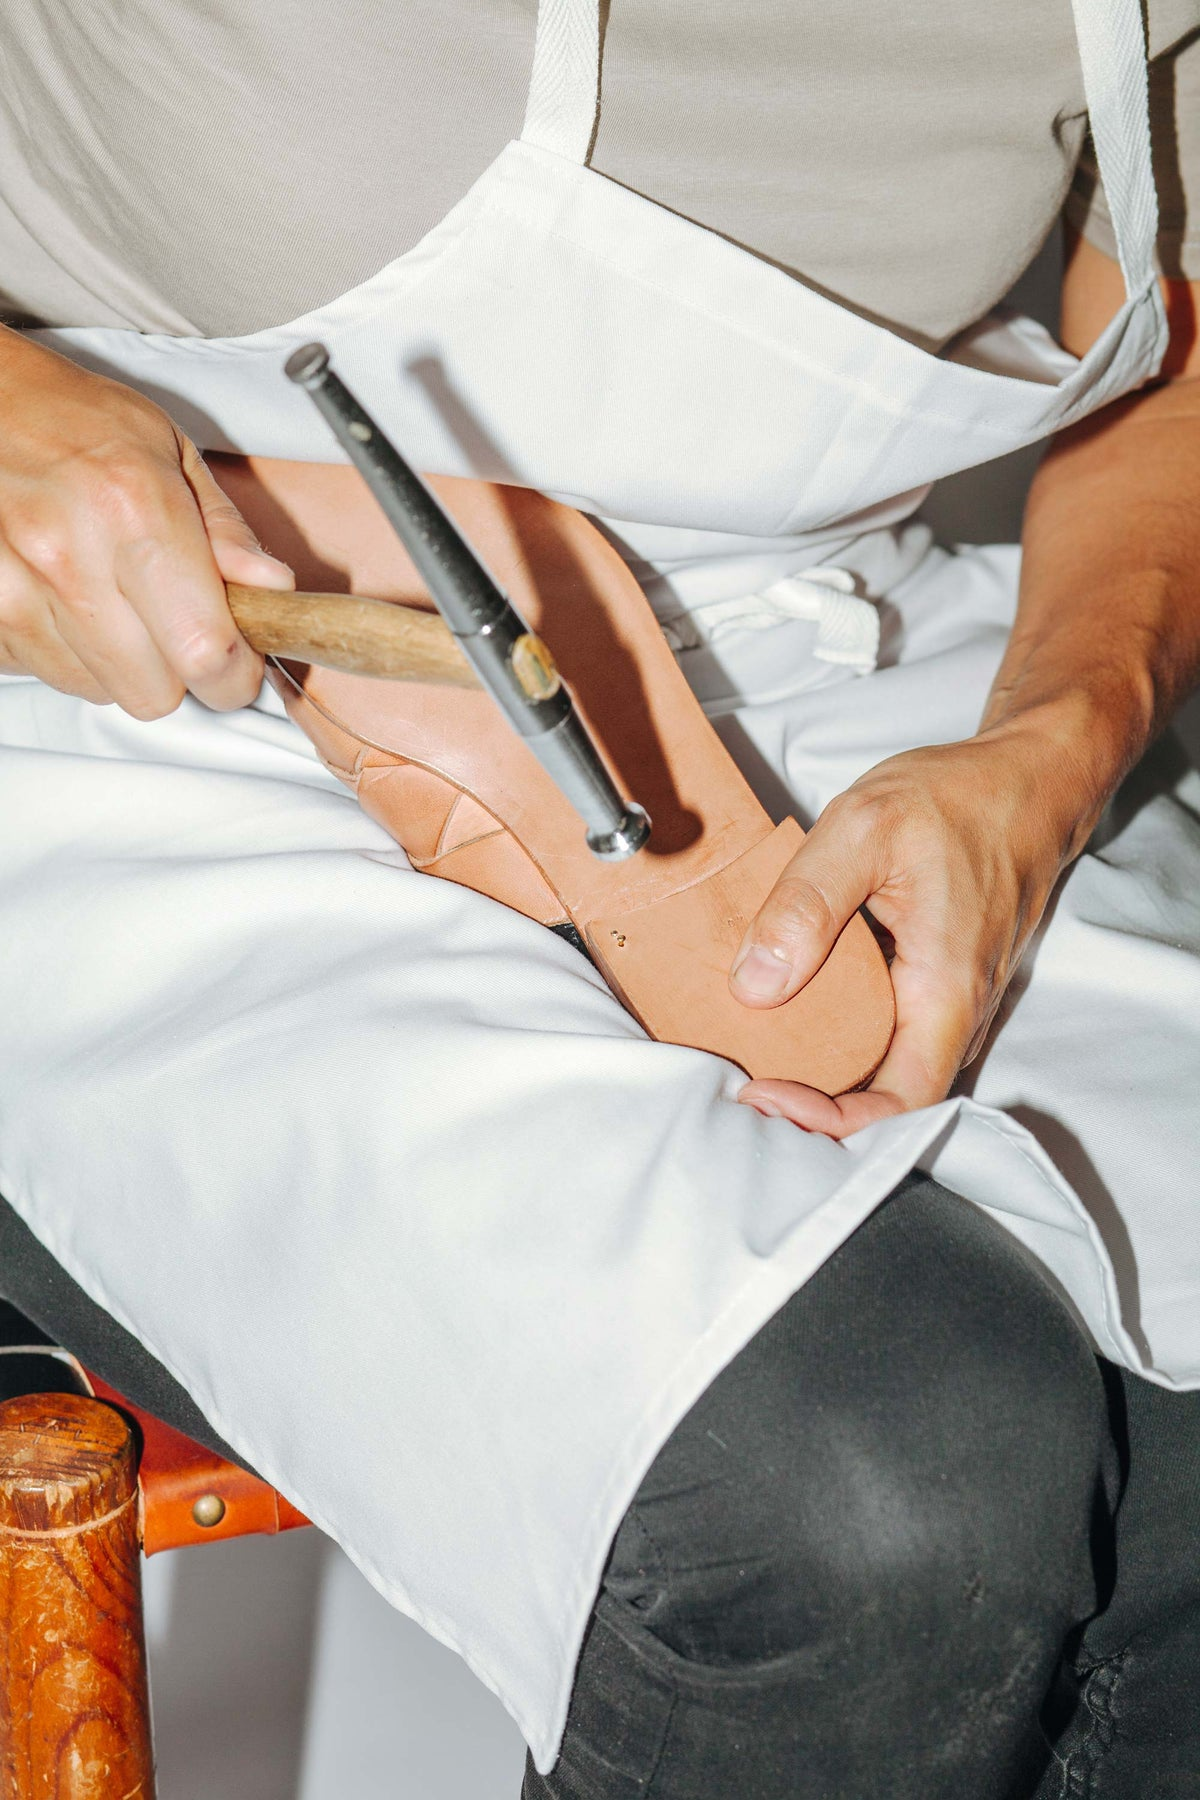 Making a leather sandal by hand